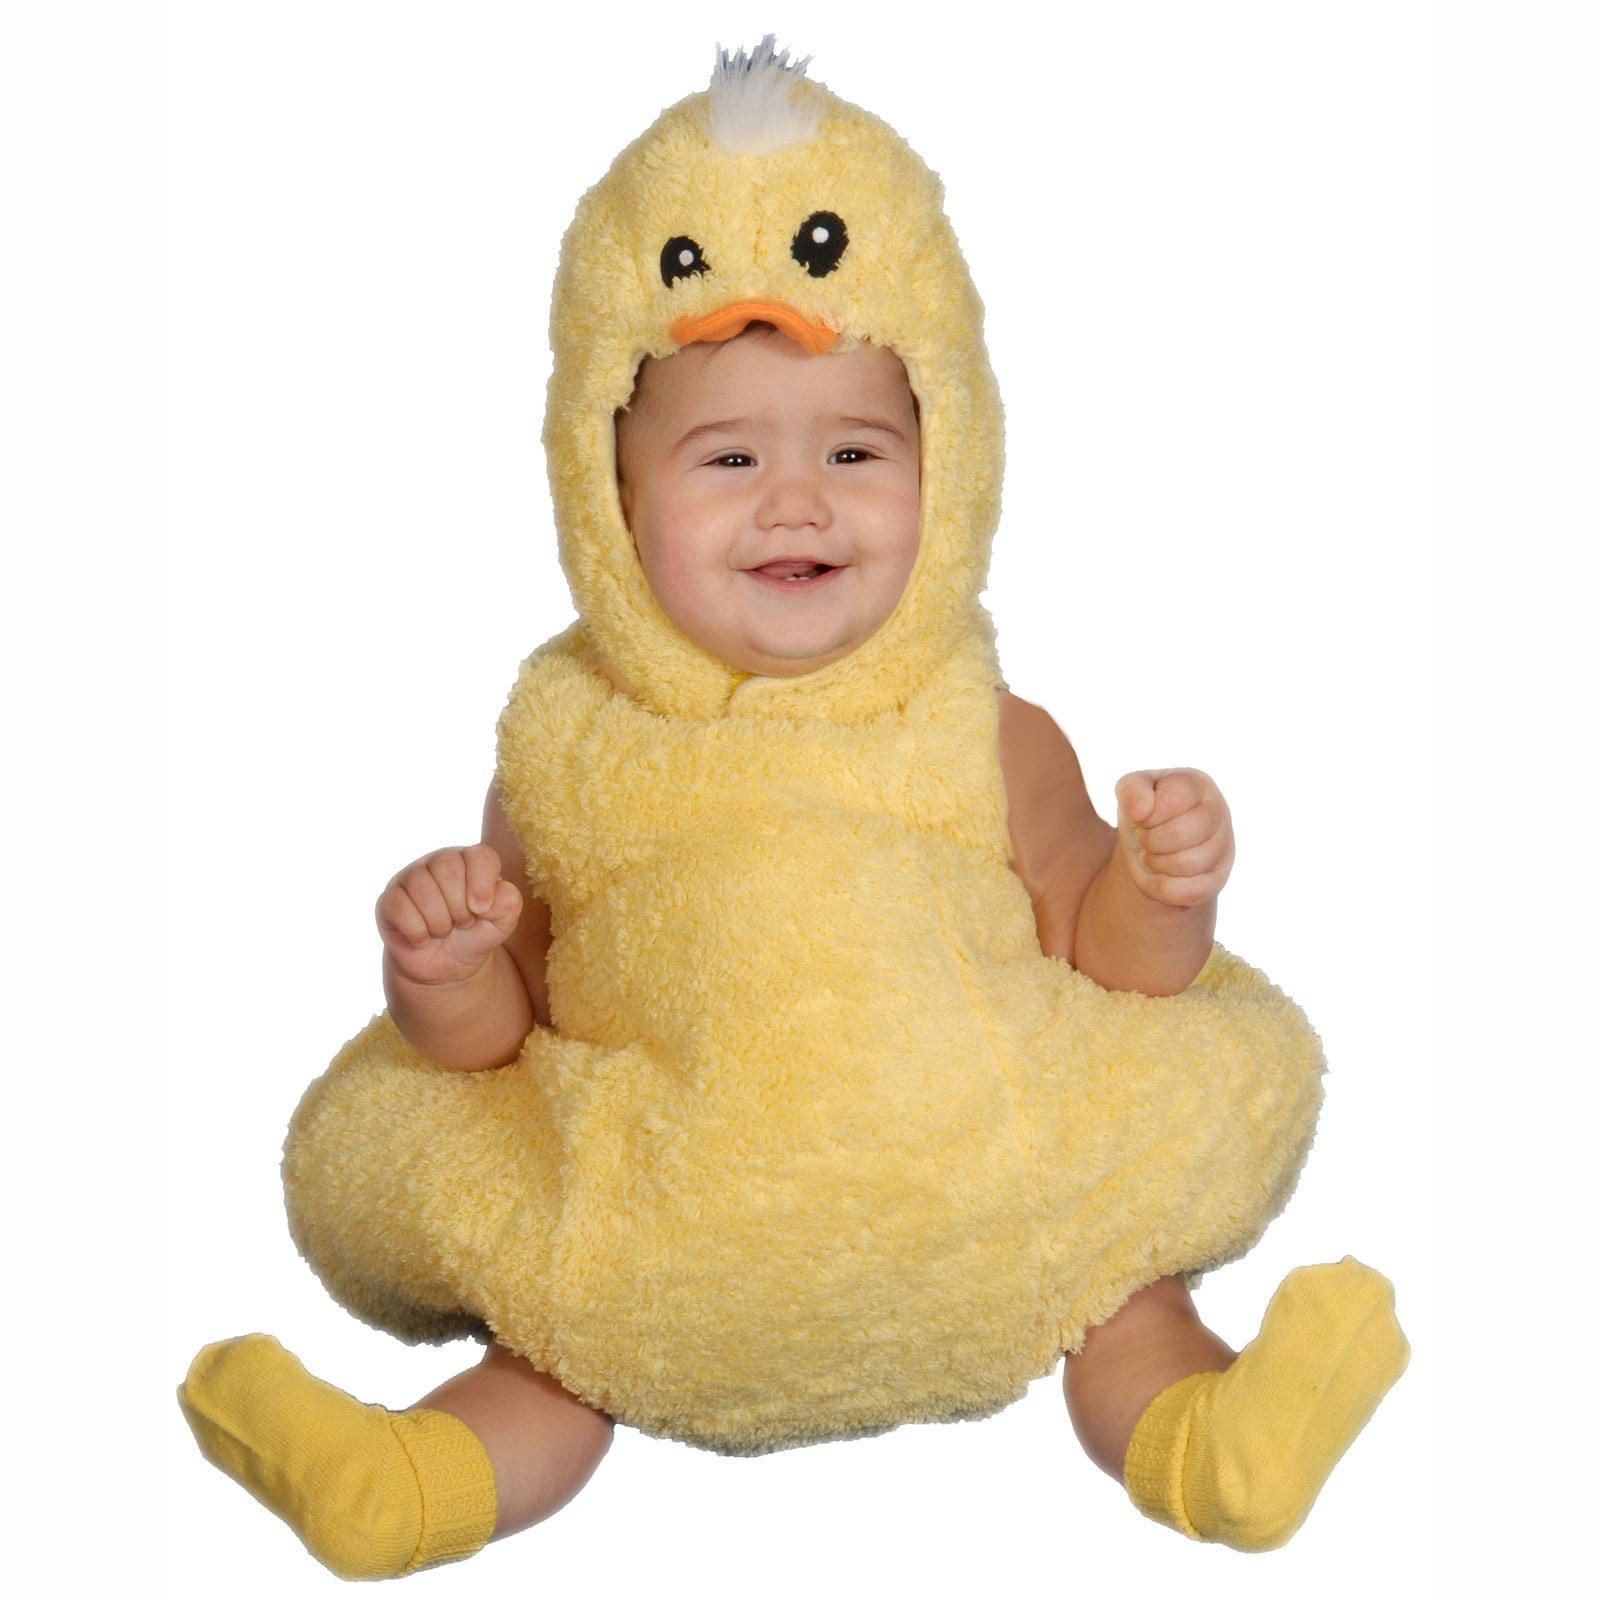 outfittrends  25 Cute Easter Outfits for Babies and Toddlers This Year 7IycxZF1